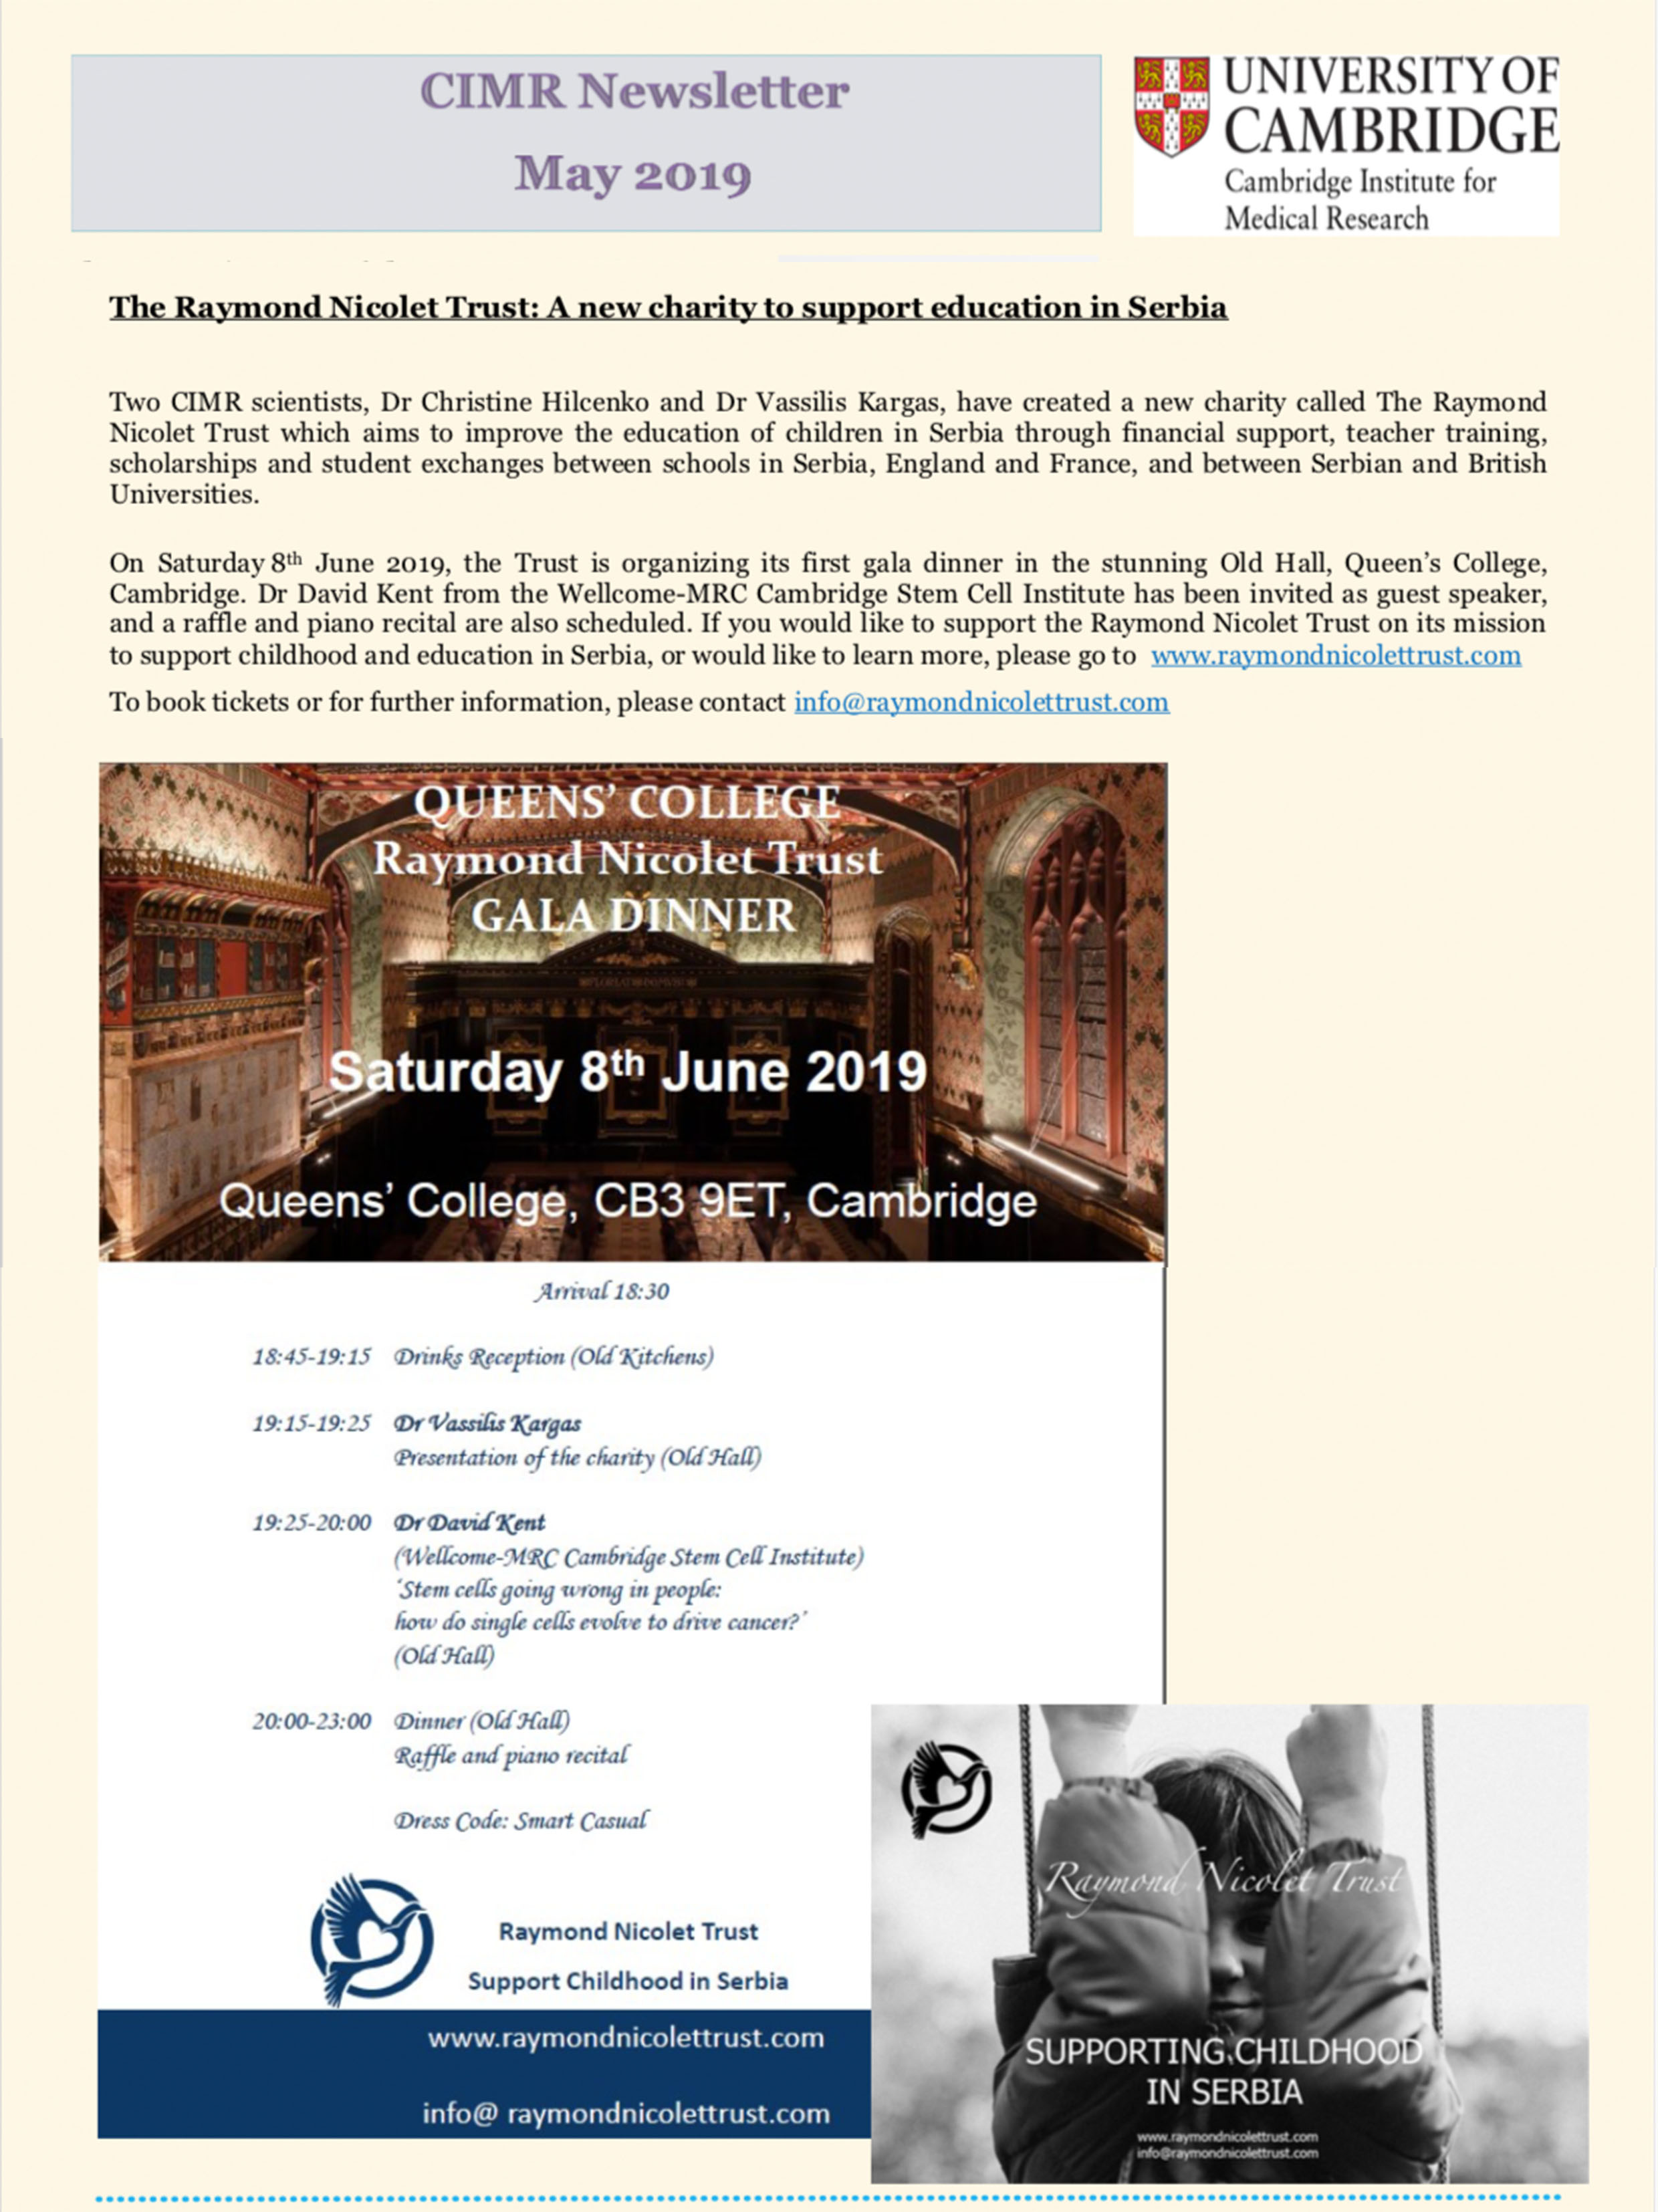 Cambridge Institute for Medical Research Newsletter, Mai 2019.